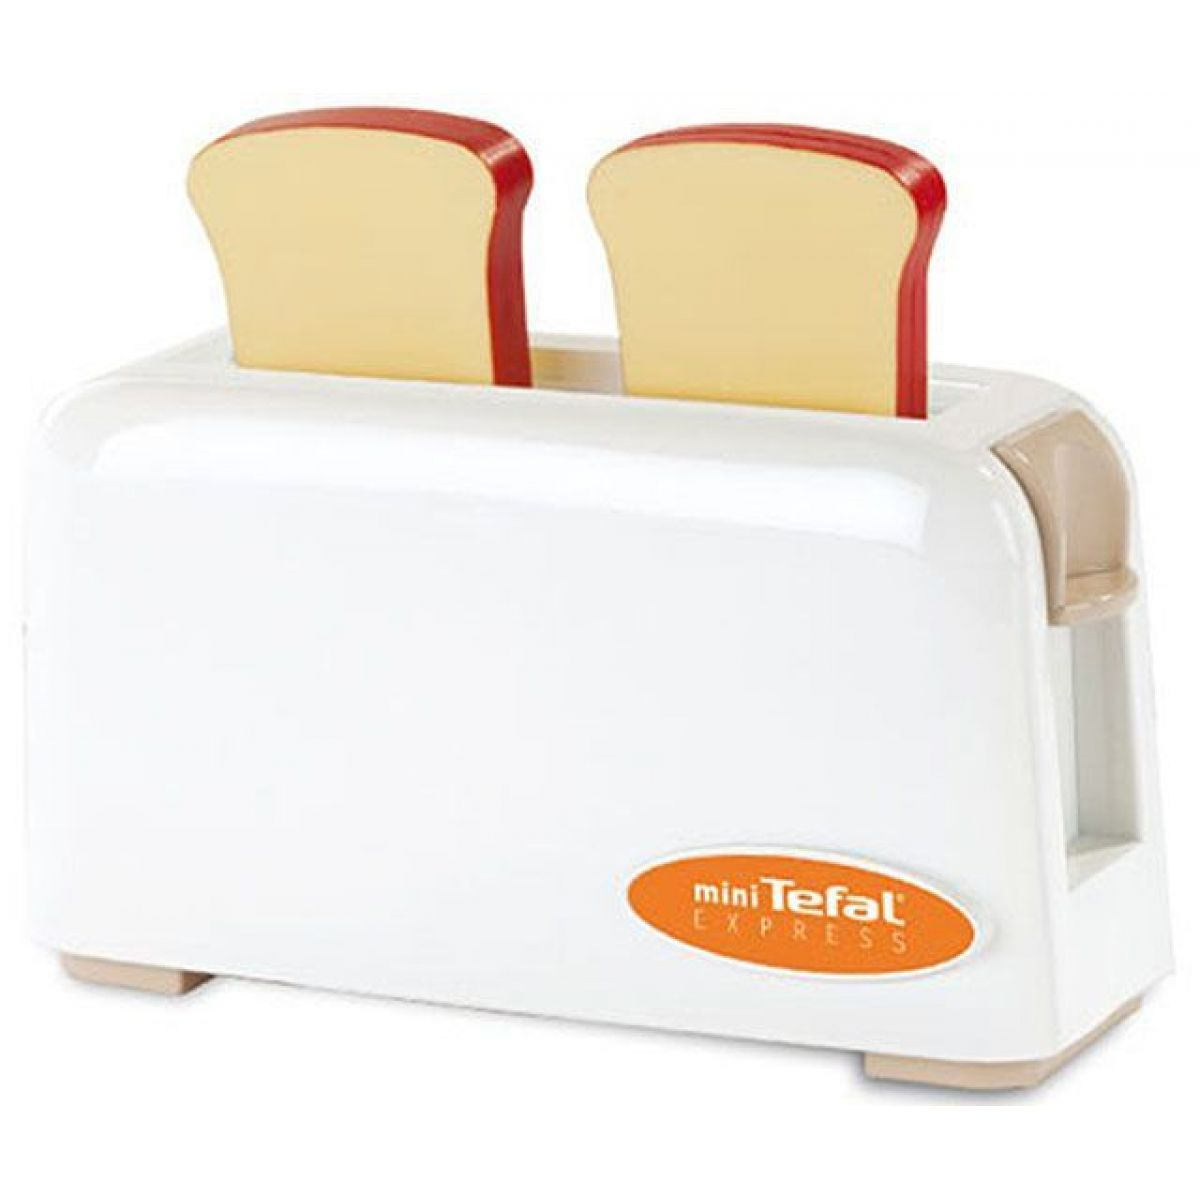 Smoby Tefal mini Express Toaster